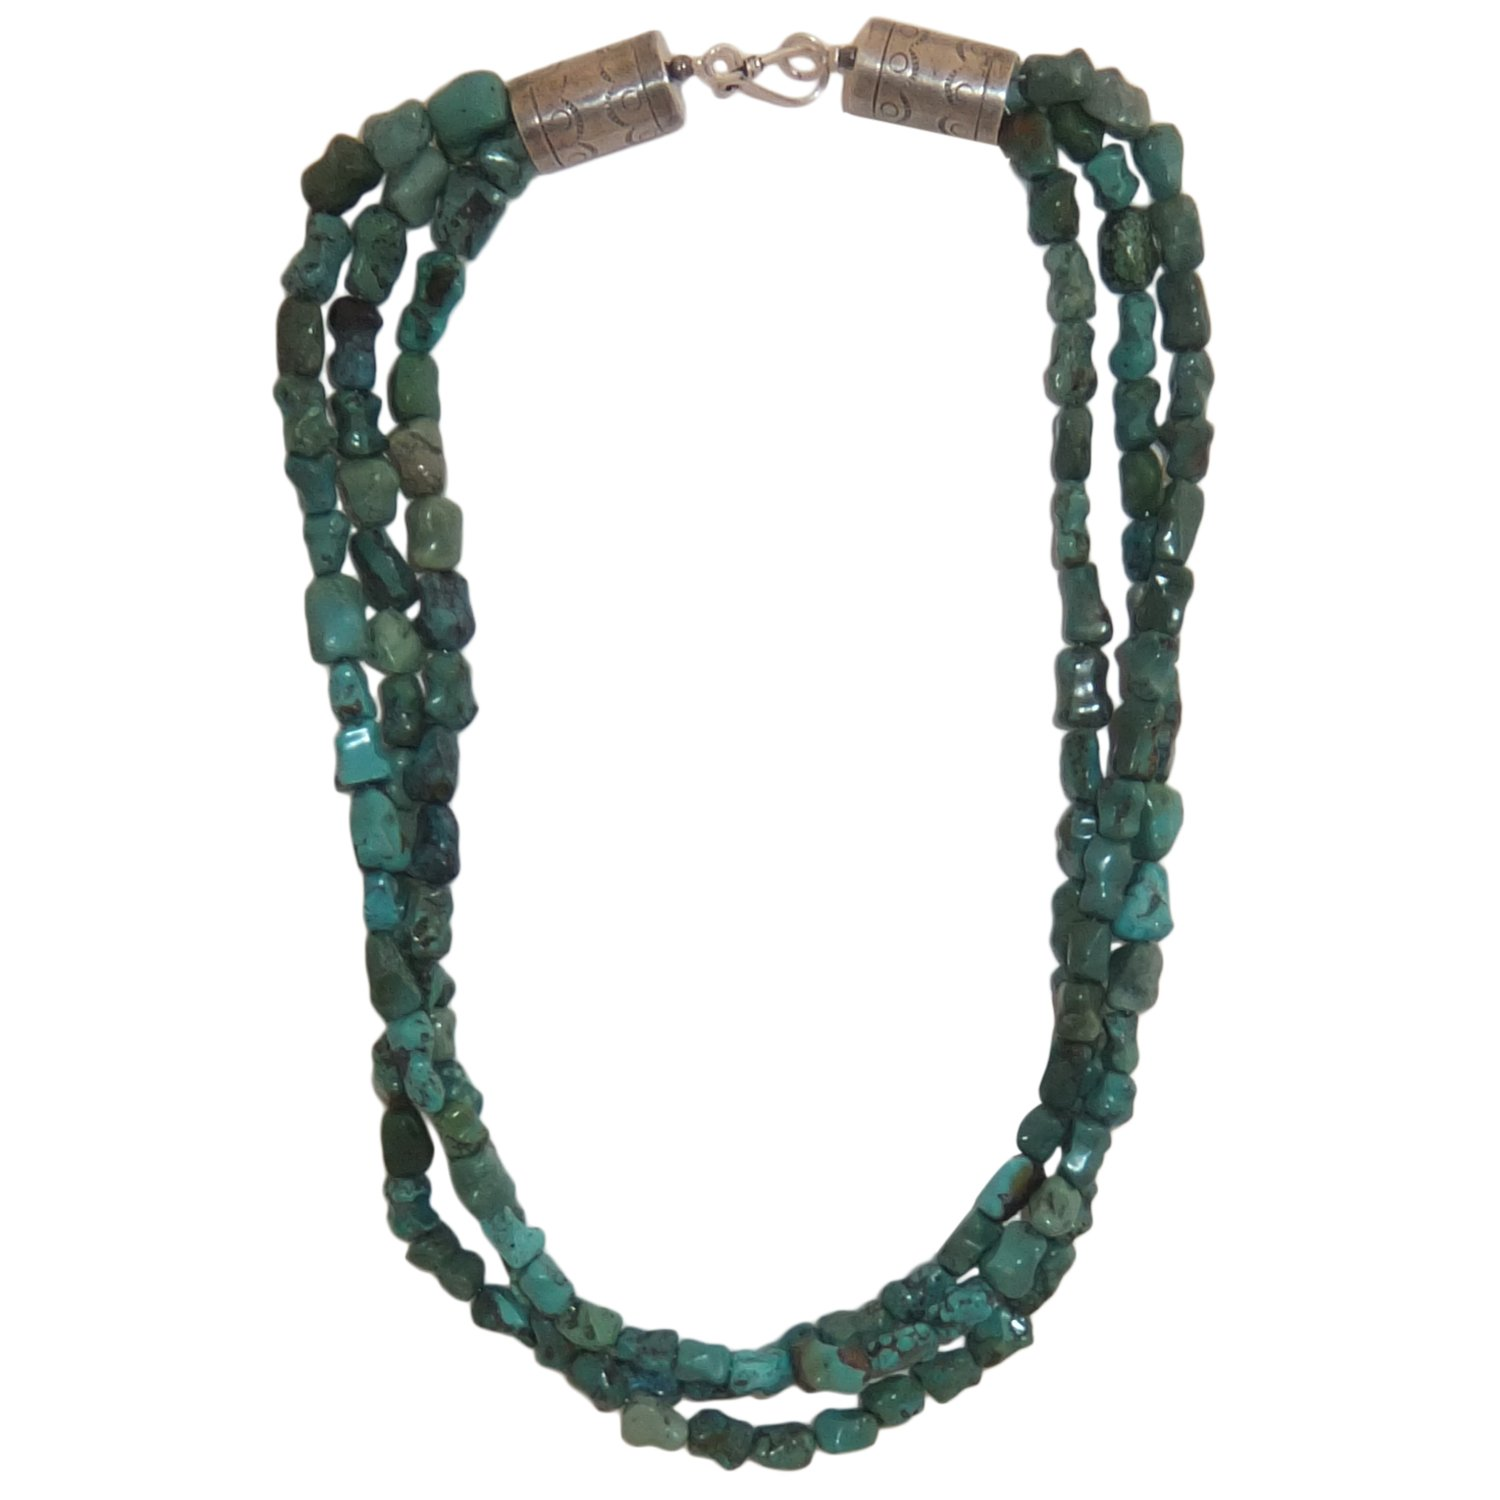 Sterling Silver Necklace Bone Turquoise, Made in USA - Exclusive Southwestern Handmade Jewelry, 3 Strand 20'' in Length Wedding Gift - Ship Within 24 Hours